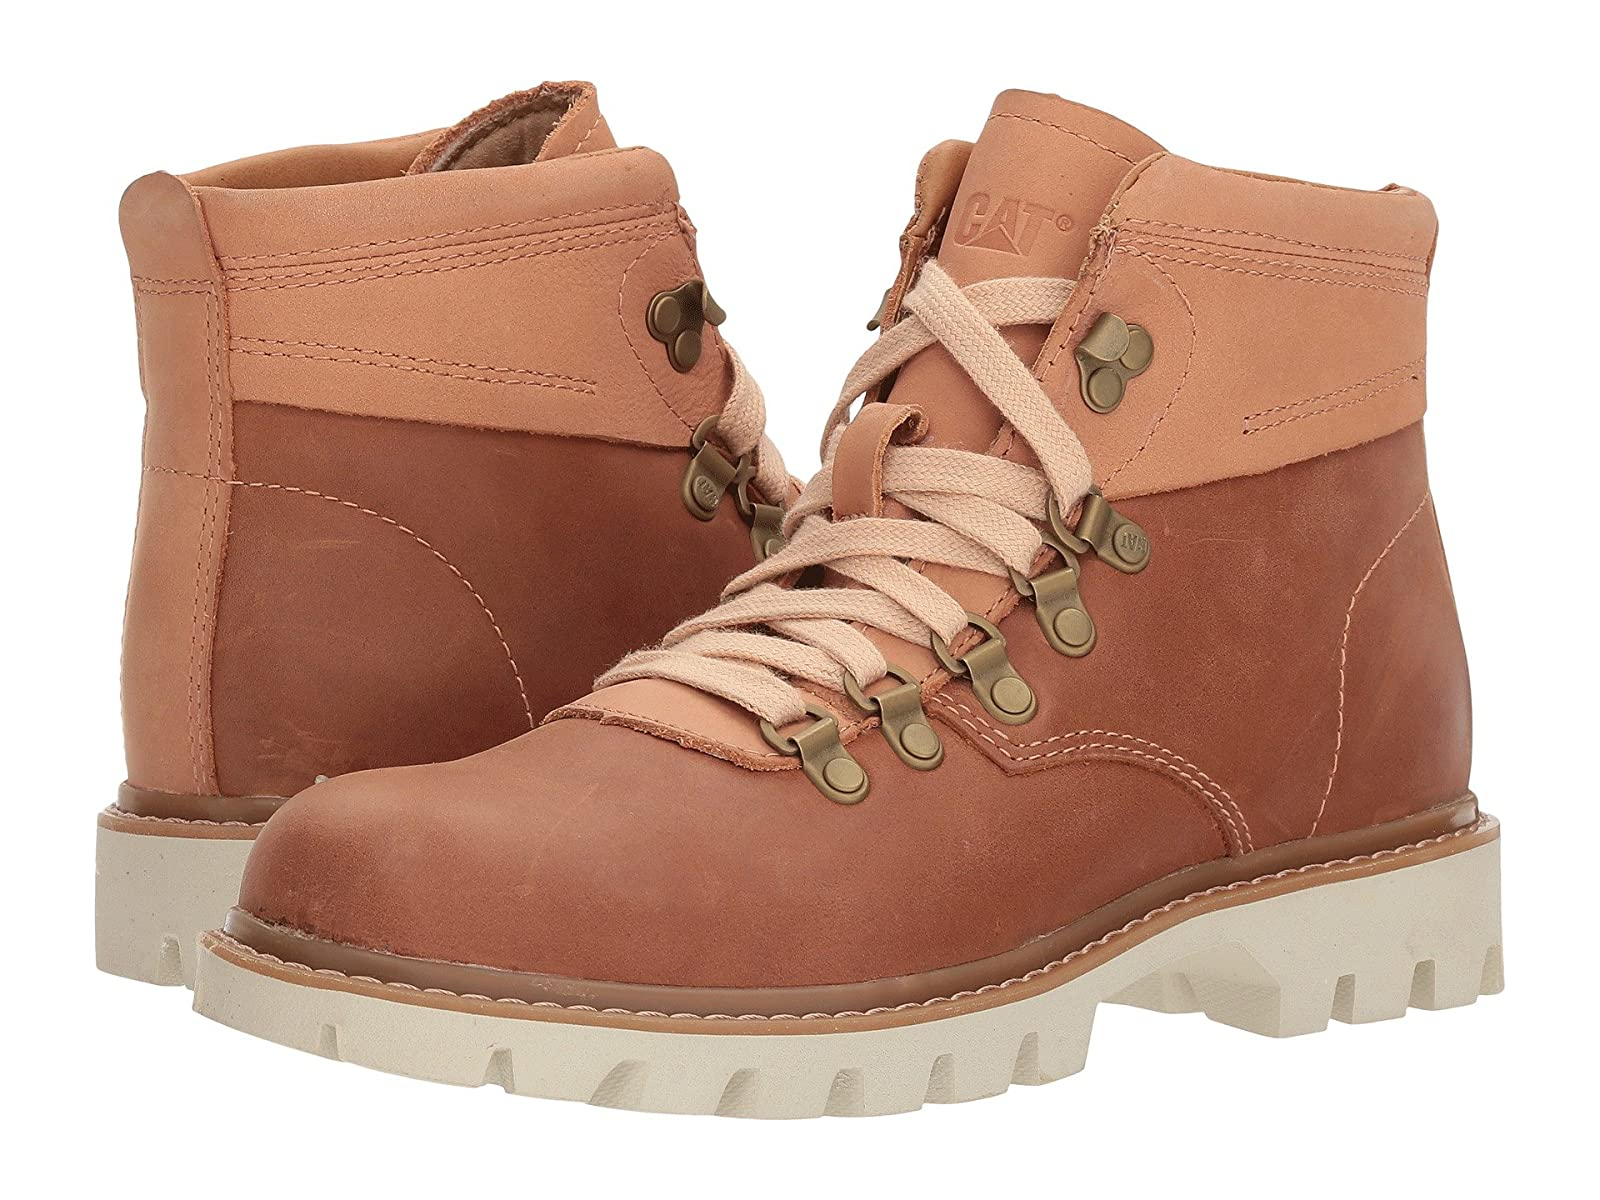 Caterpillar Casual CruxSelling fashionable and eye-catching shoes